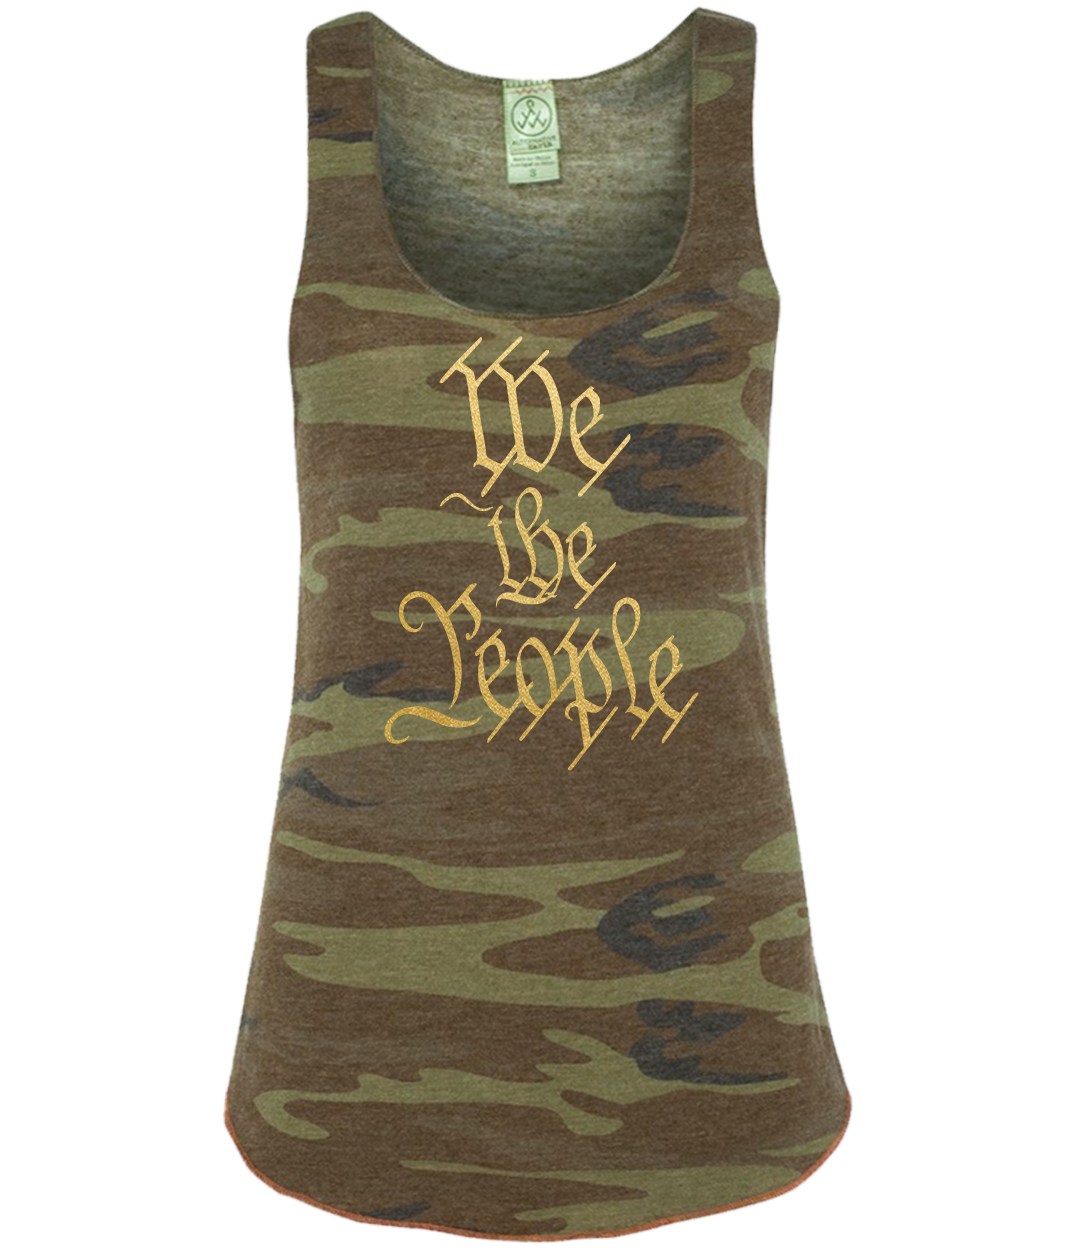 we the people camo tank top